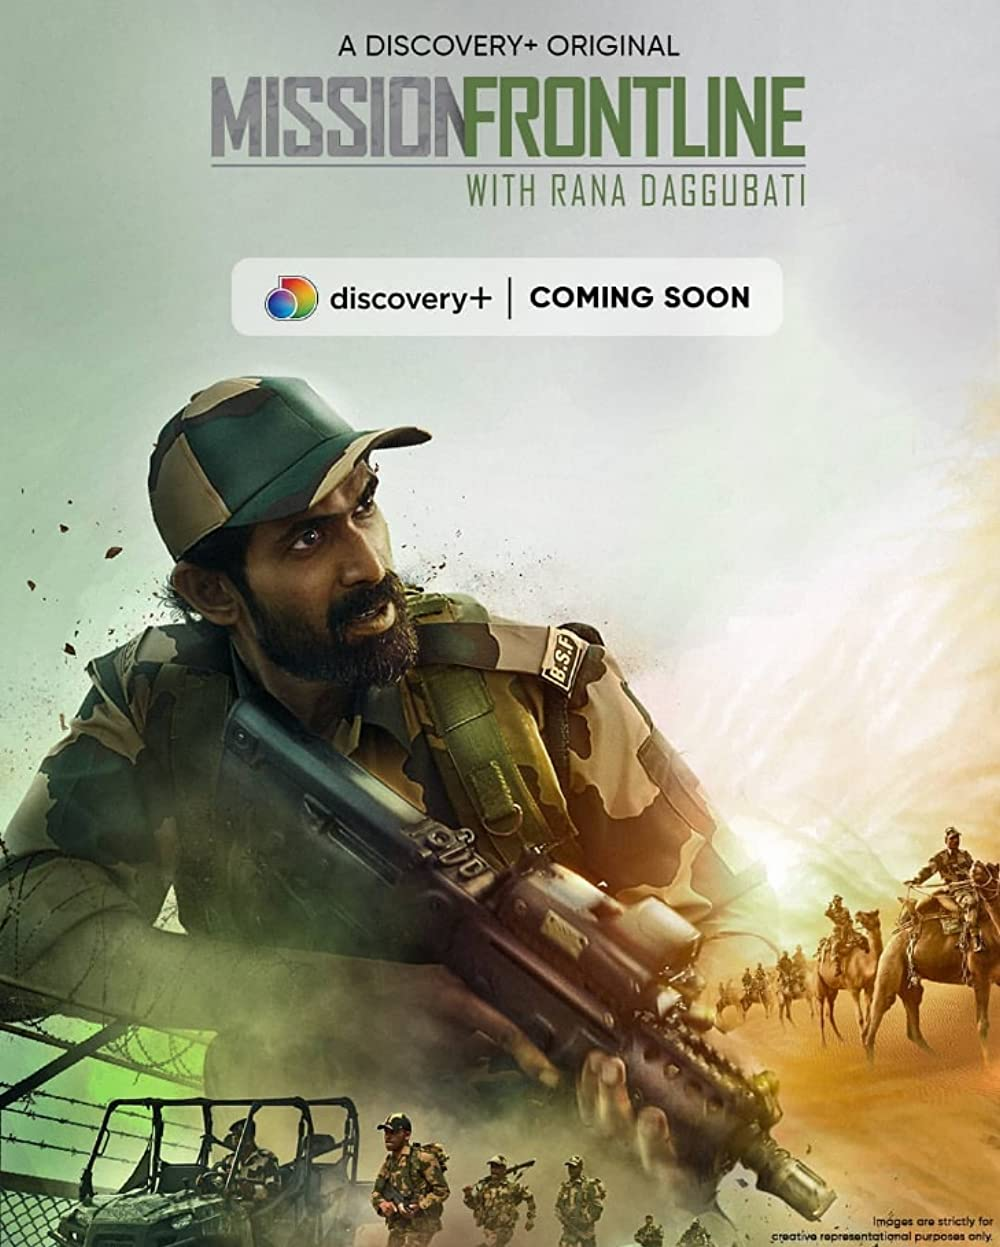 Mission Frontline with Rana Daggubati 2021 S01E01 Hindi DSCV Web Series 1080p HDRip 1GB Download